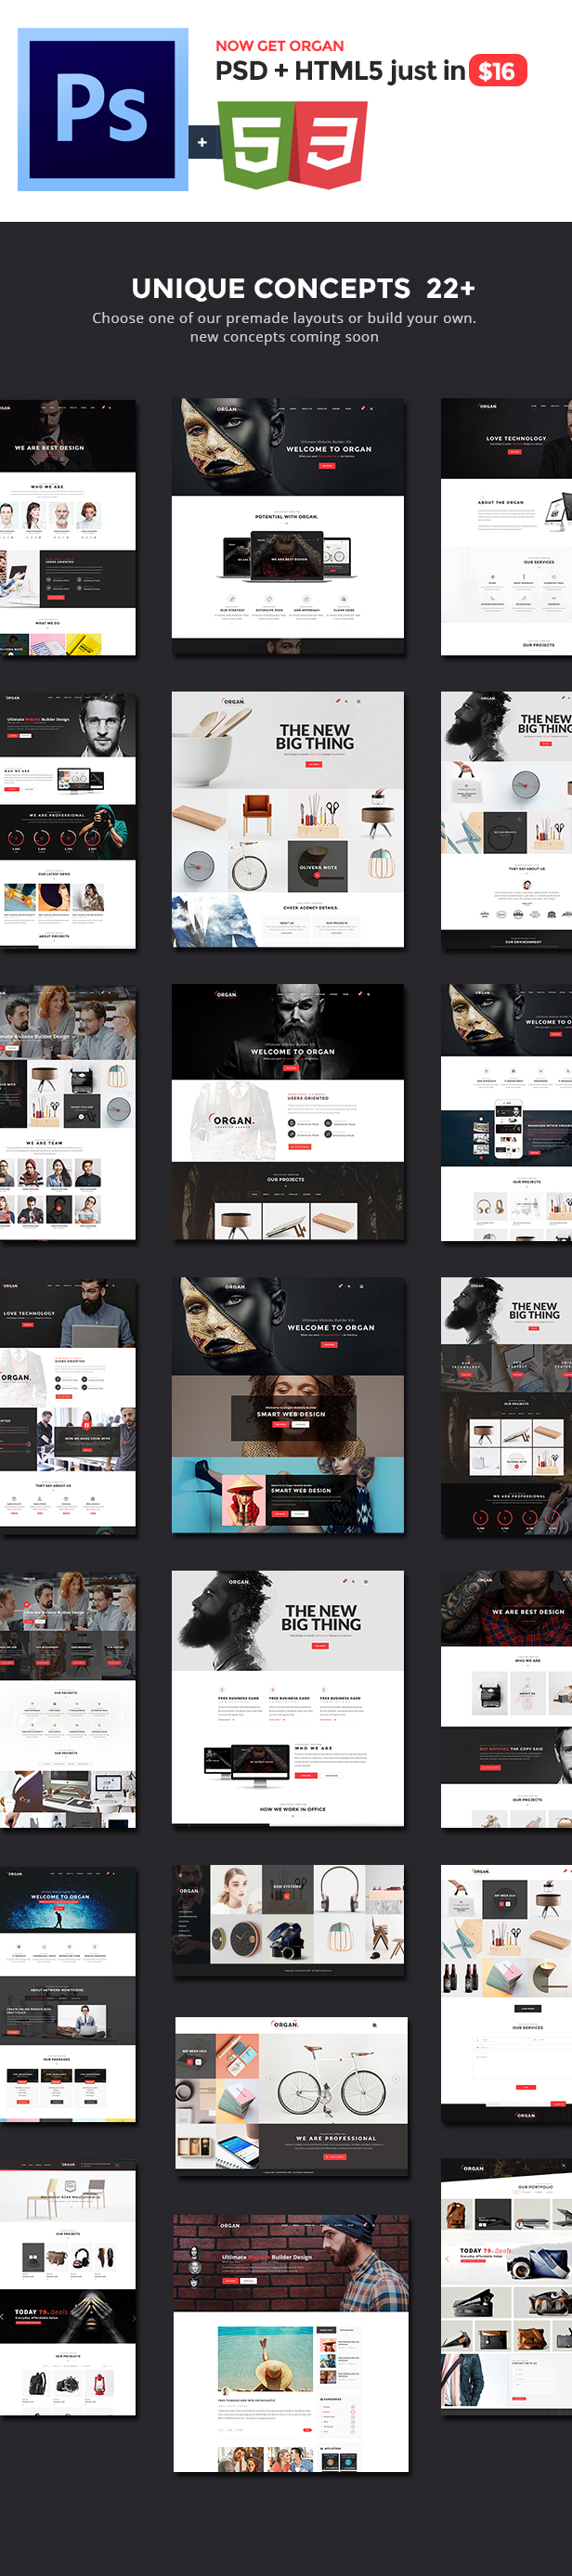 The Multi-Purpose Responsive HTML5 Template